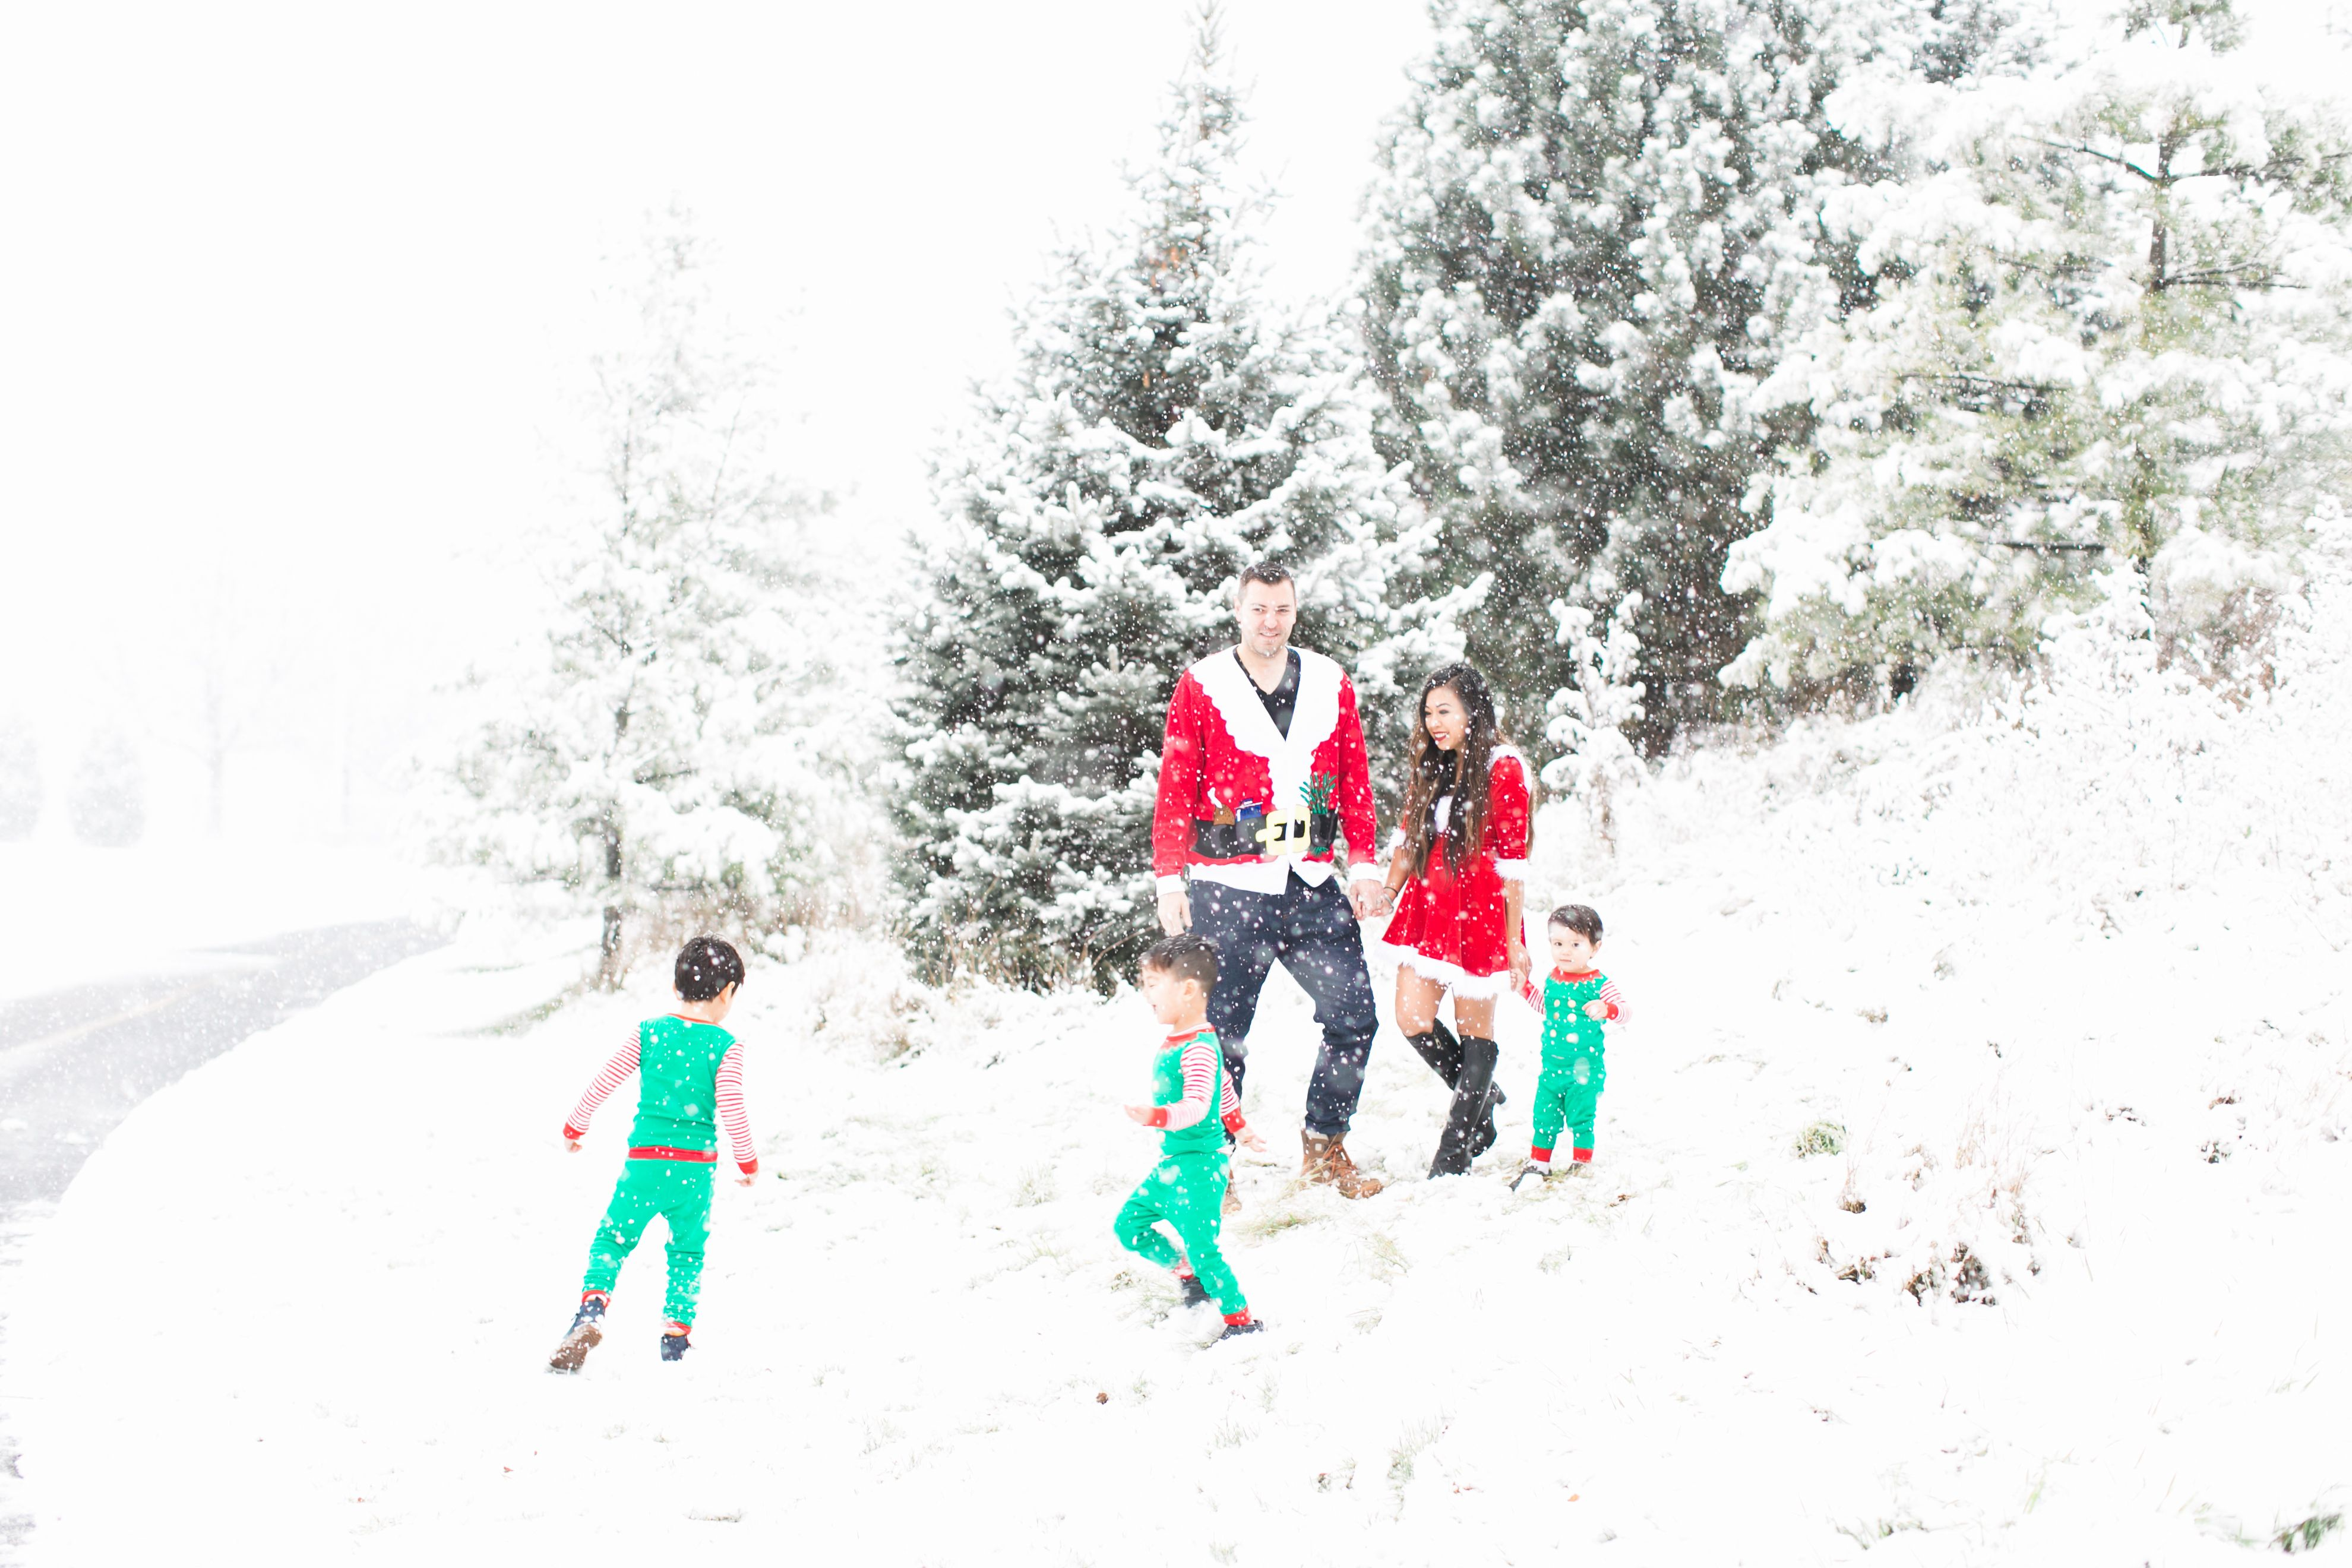 The Funniest Holiday Family Photos Ever  #holiday #christmas #family #five #holidaycards #christmascards #funny #unique